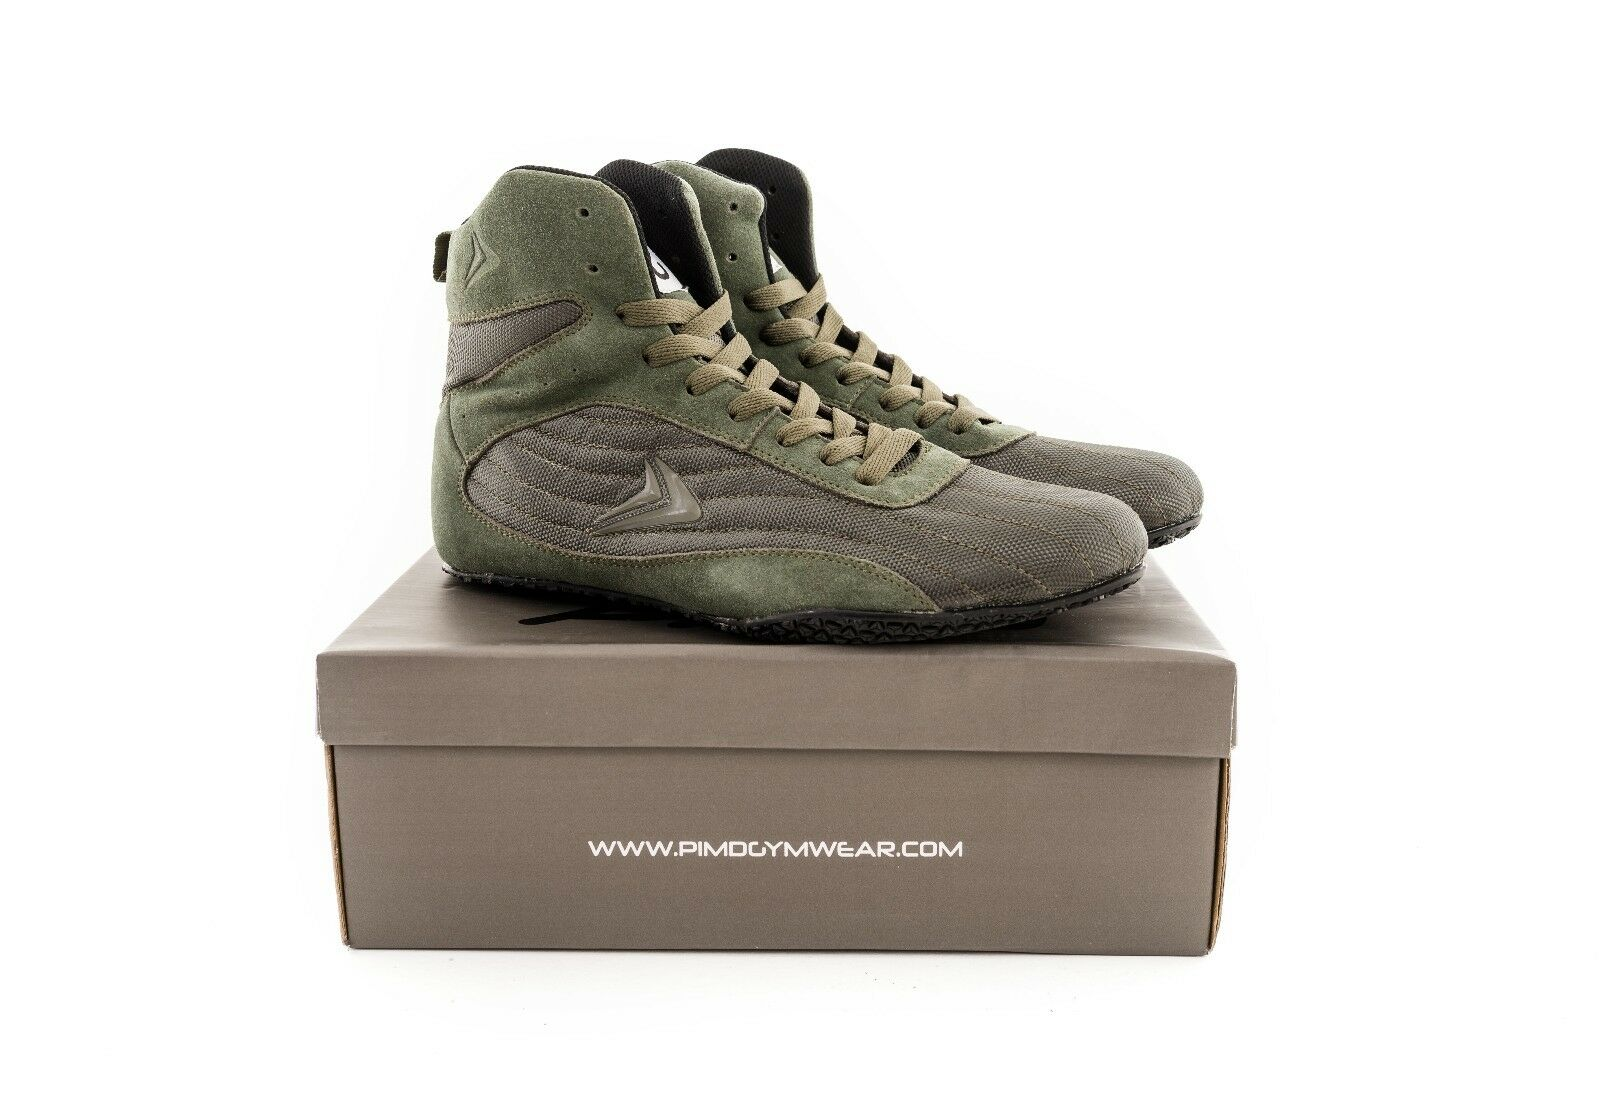 PIMD Khaki Green X-Core V2 Gym Boots - Hightop Weight Lifting Fitness Workout